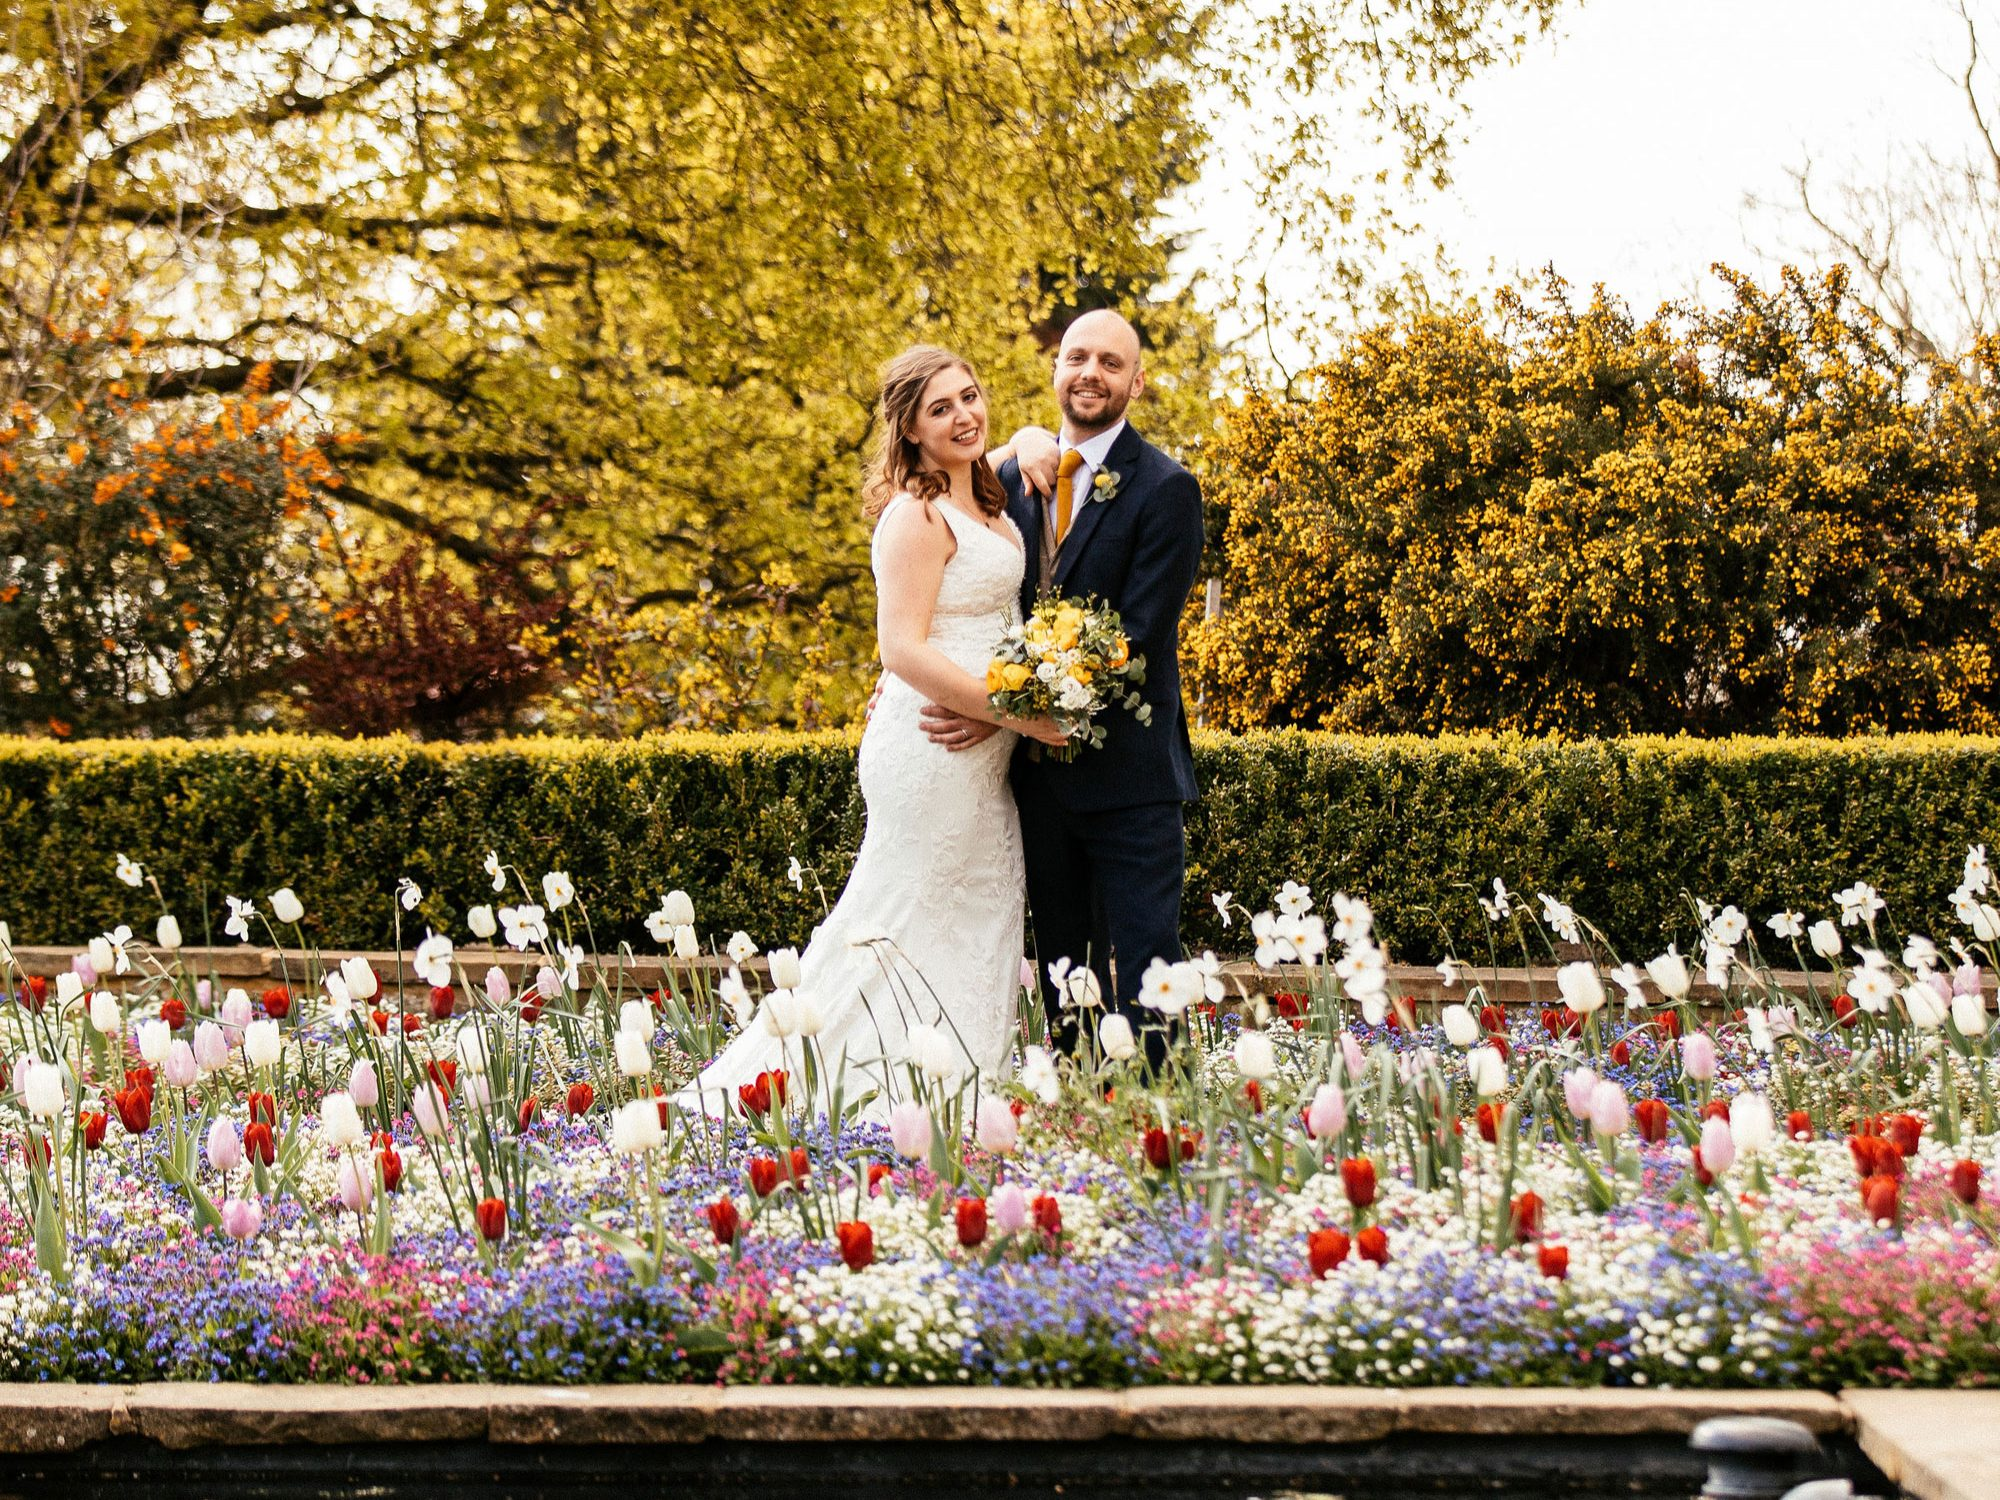 A bride and groom stand among white, red and blue flowers